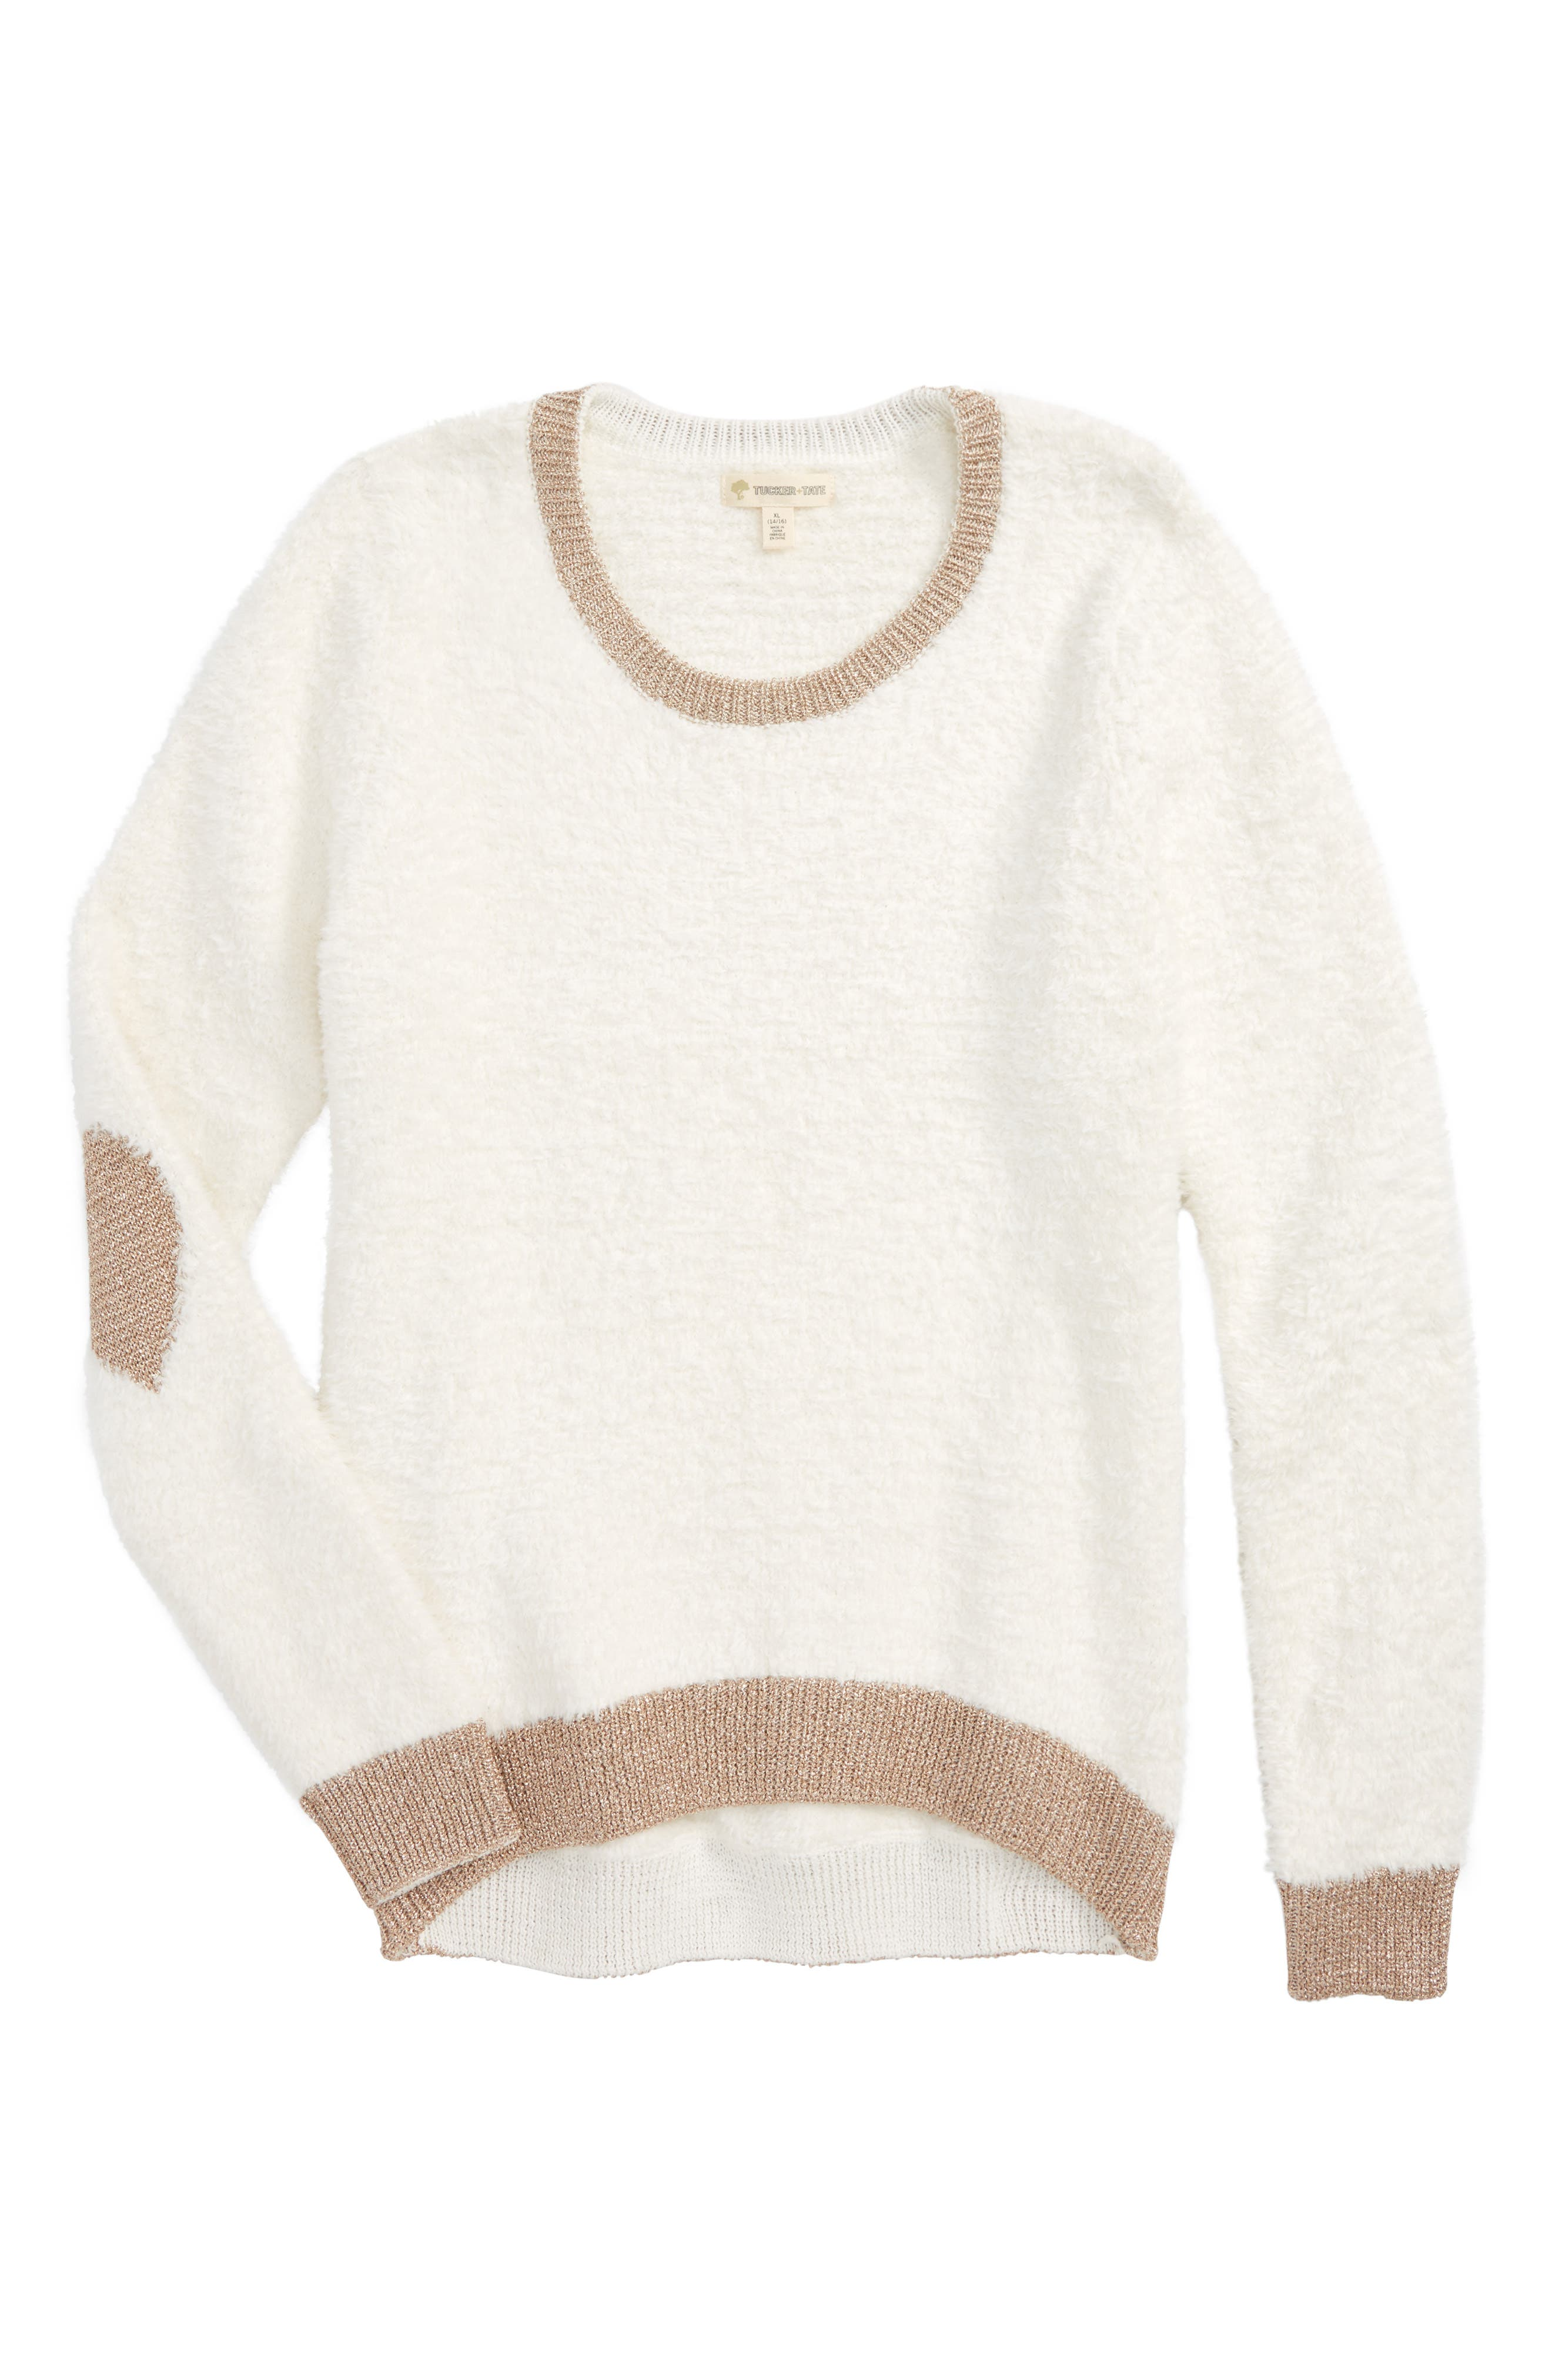 Teddy Pullover Sweater,                         Main,                         color, Ivory Egret